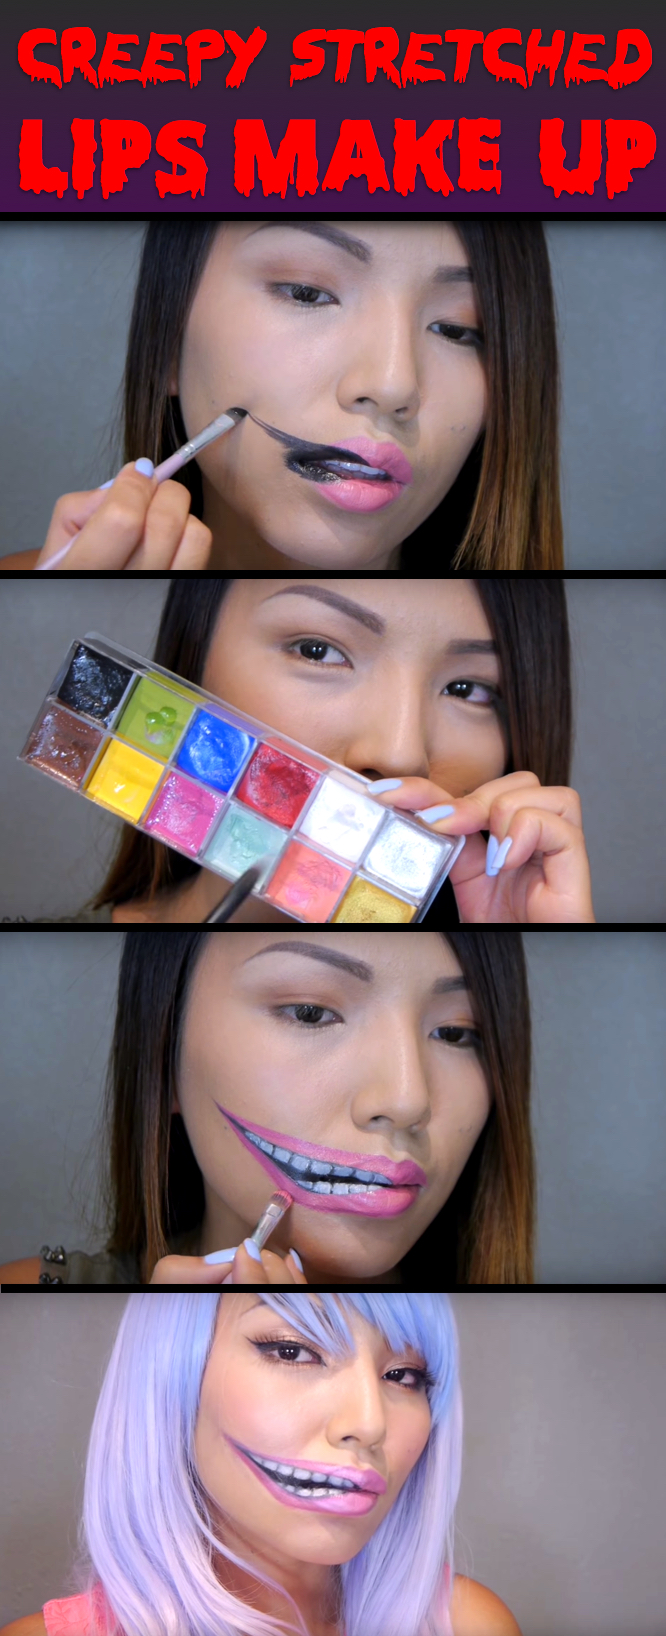 Chic Yet Spooky Stretched Lips Makeup For Halloween